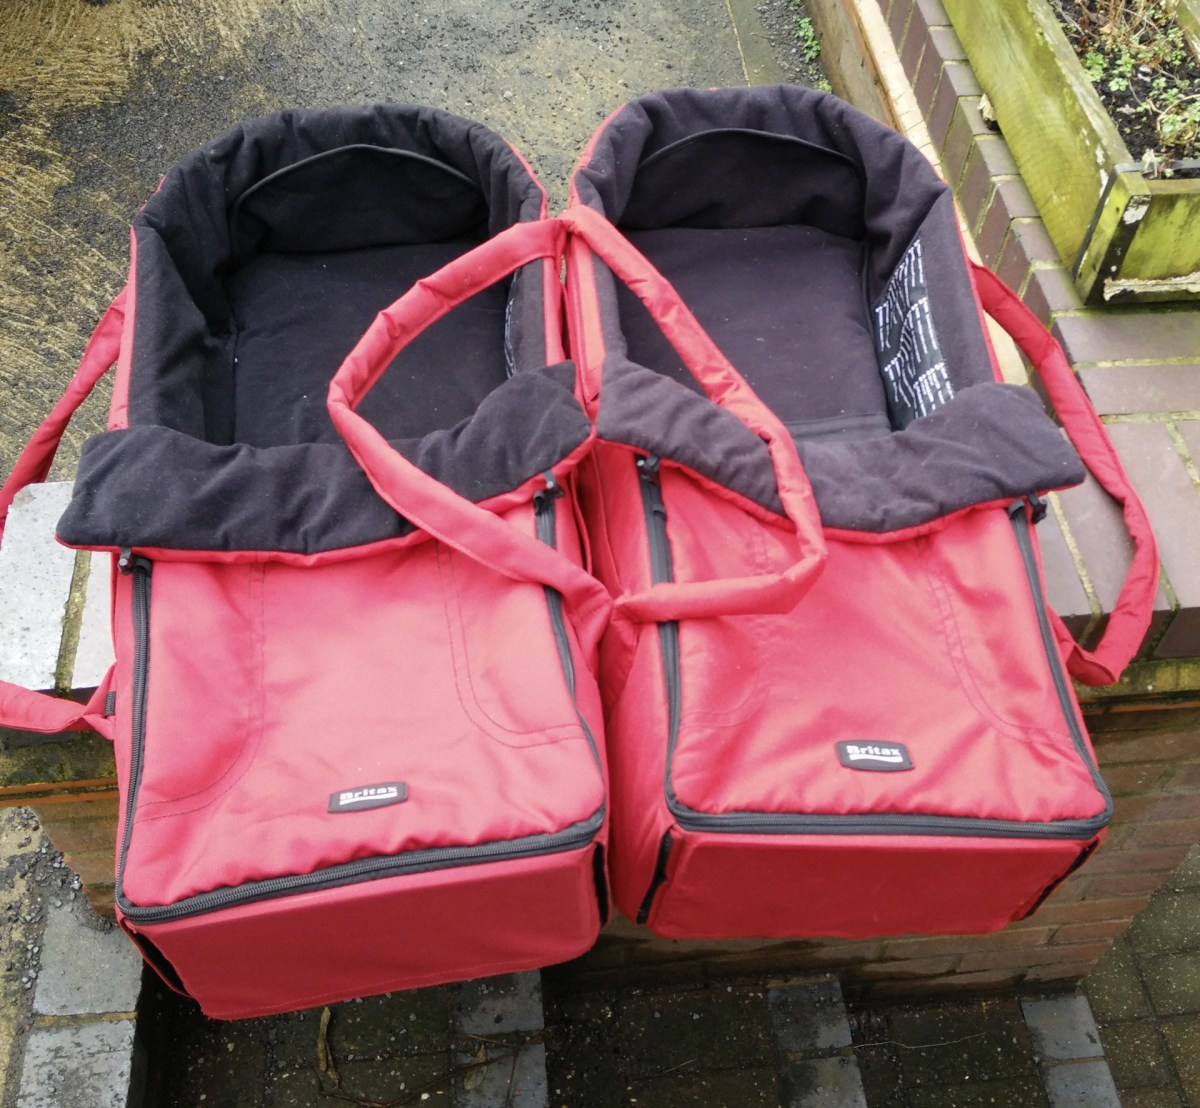 For Sale: 2 x Brittax B-Smart soft carry cots